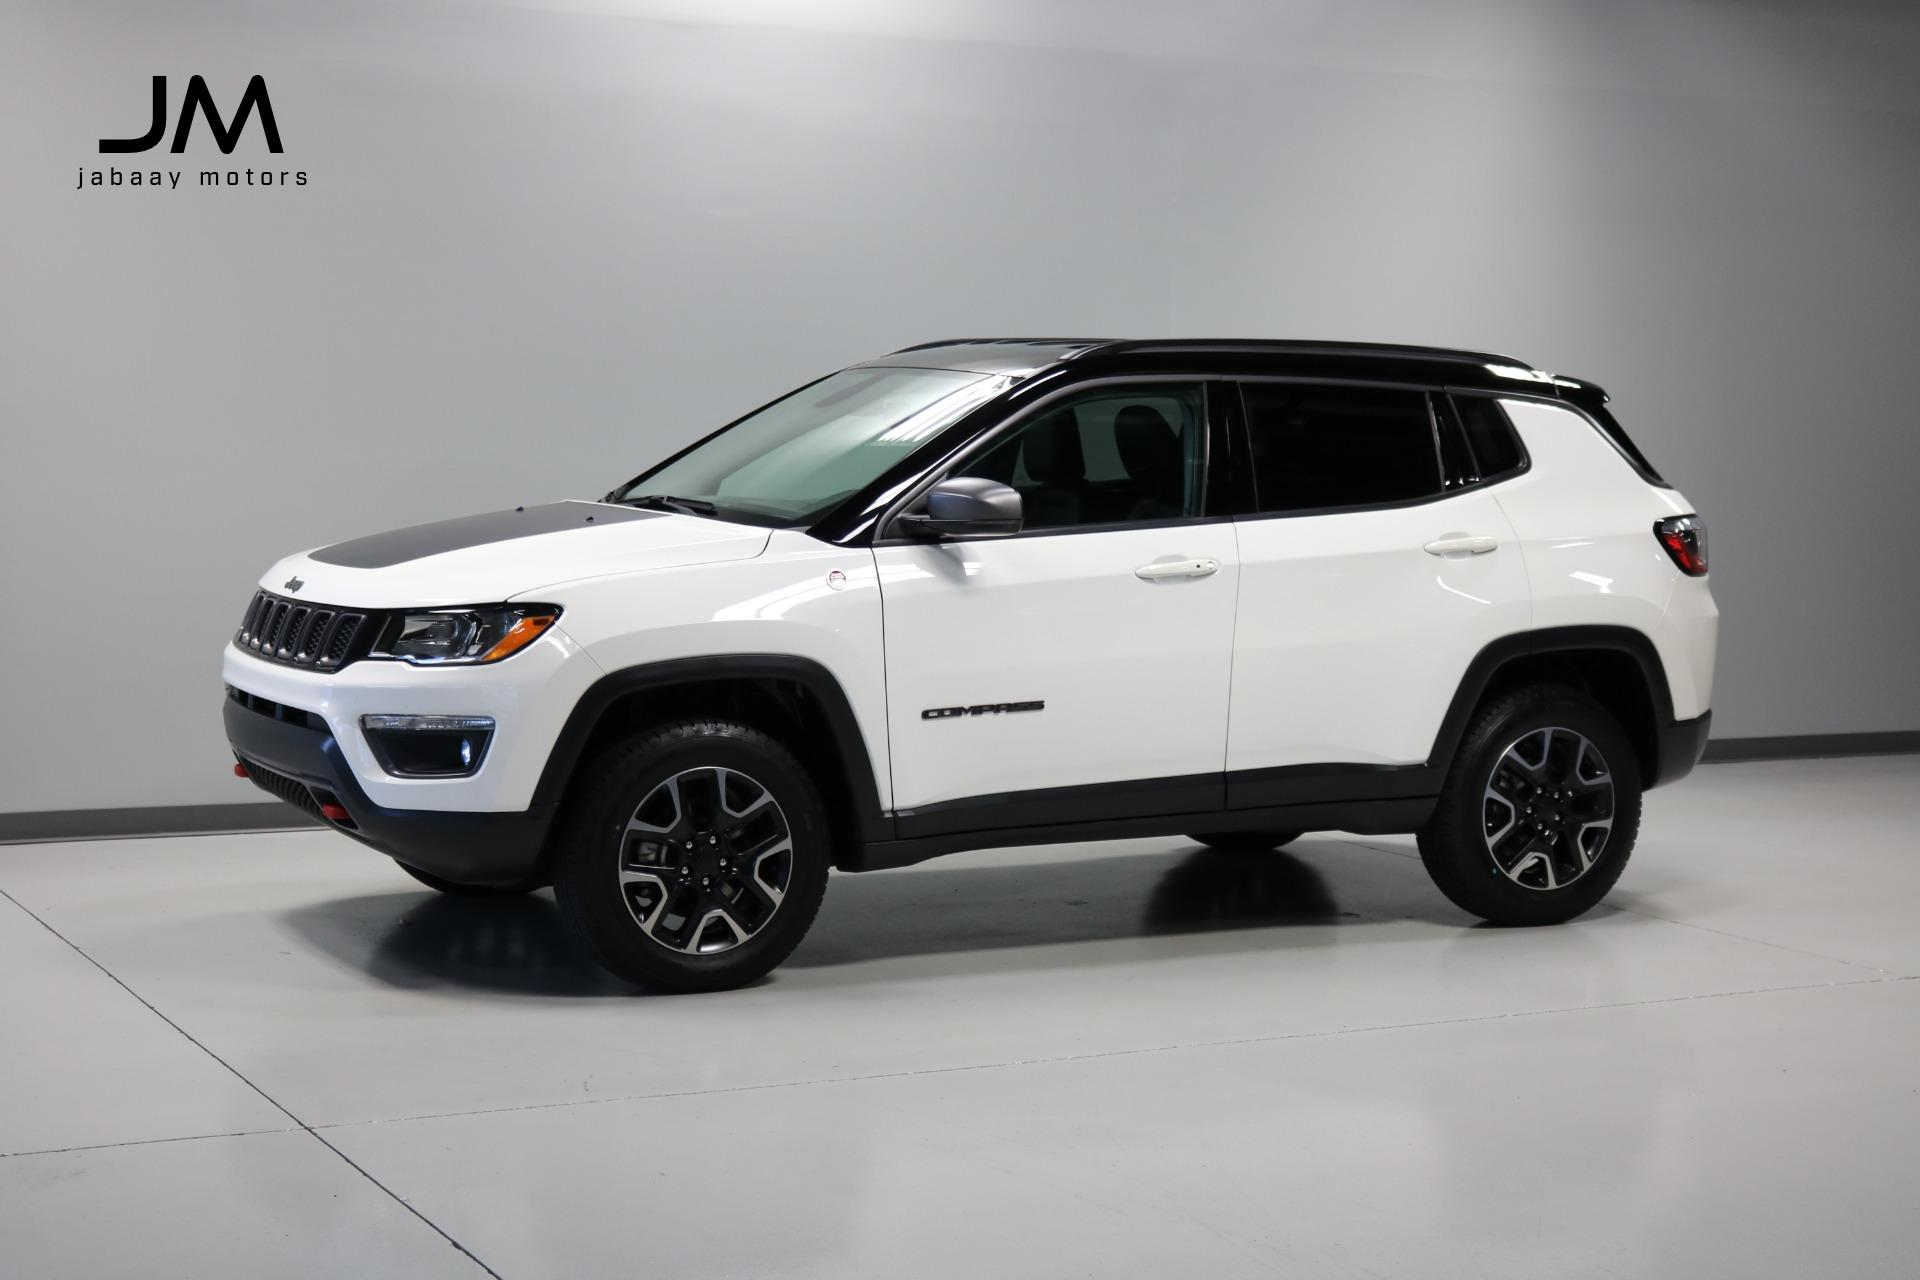 Used 2019 Jeep Compass Trailhawk 4x4 4dr Suv For Sale Sold Jabaay Motors Inc Stock Jm7190